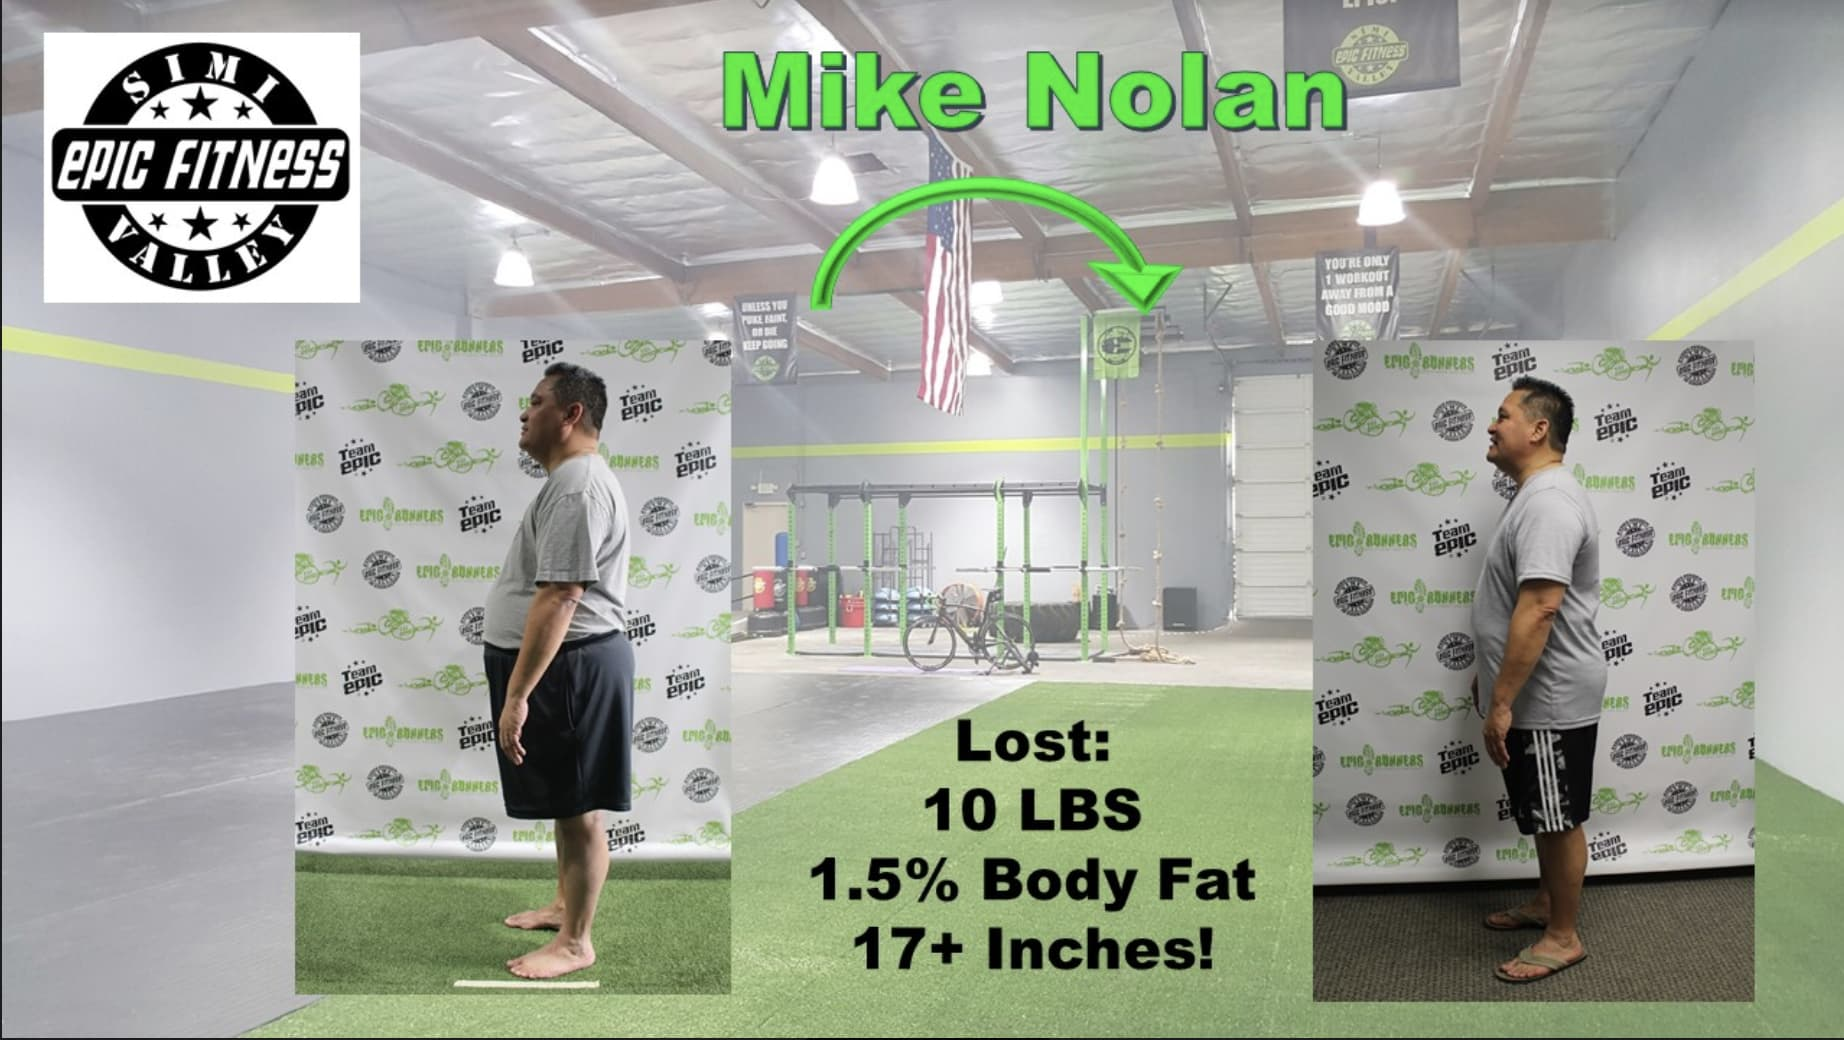 Mike Nolan, Epic Fitness Testimonials